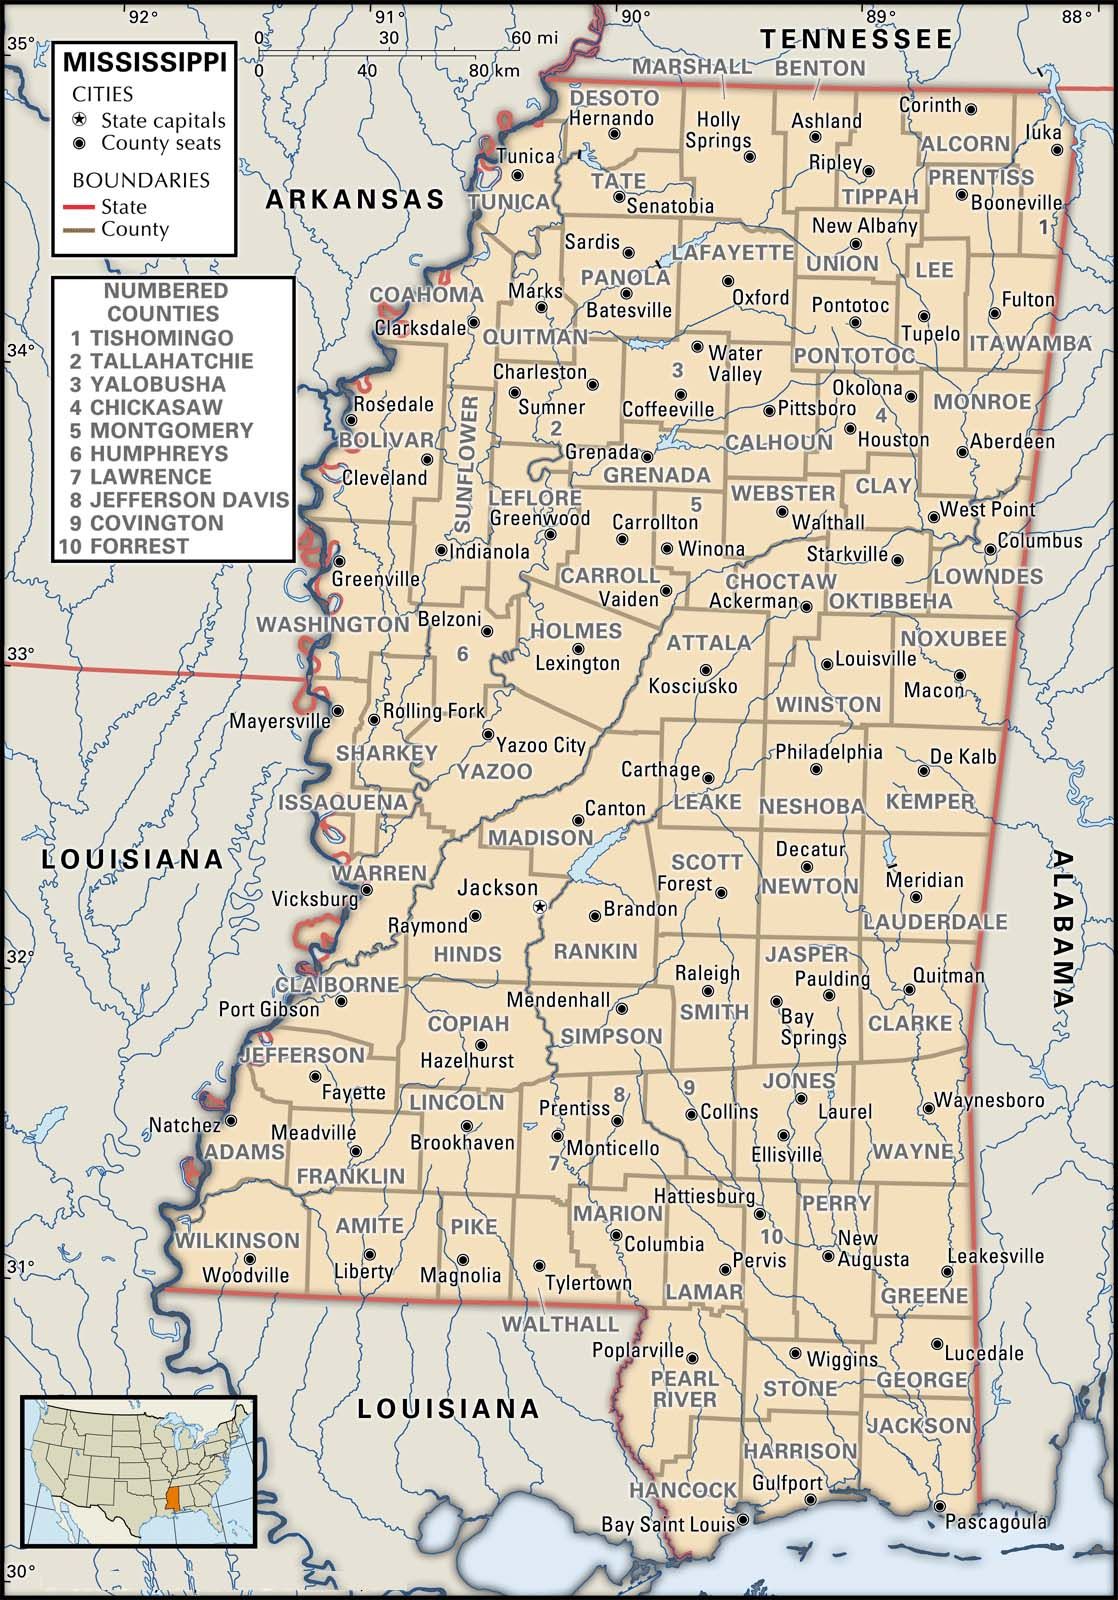 map of mississippi county boundaries and county seats. state and county maps of mississippi